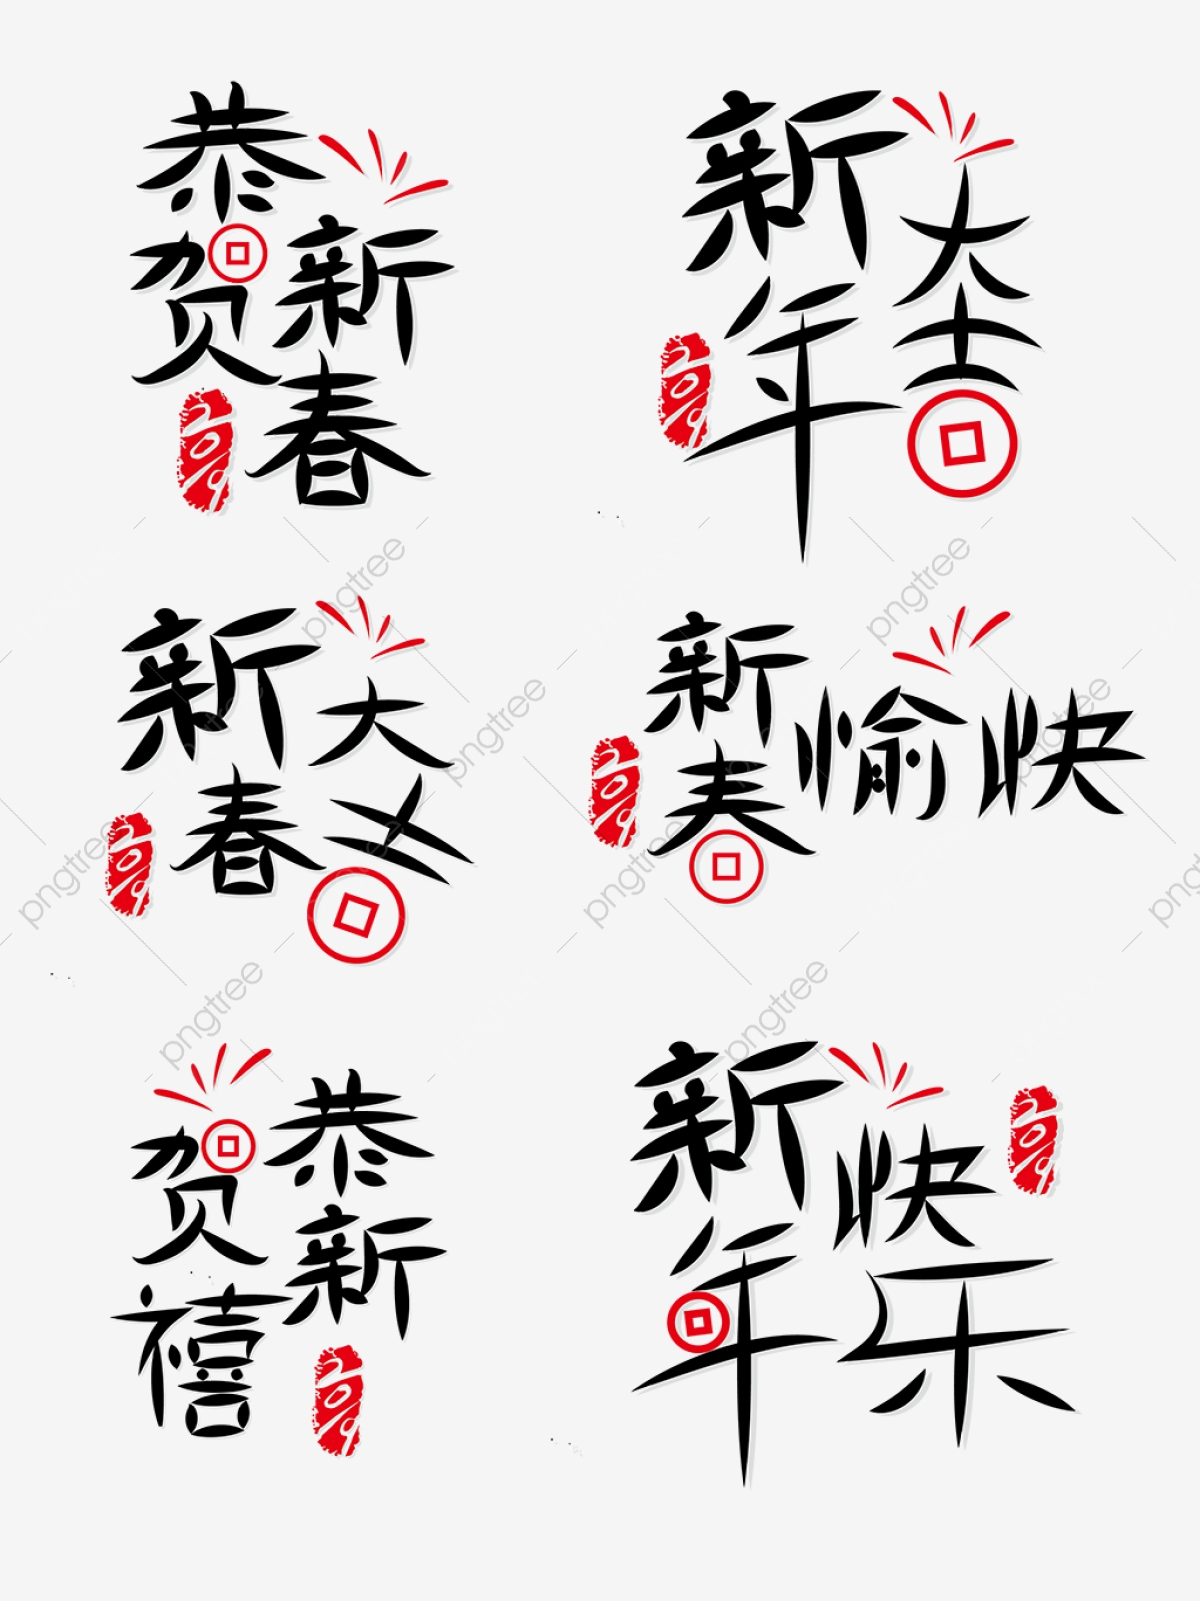 happy chinese new year greetings related art words set happy new year congratulations to the new year new years day png and vector with transparent background for free download https pngtree com freepng happy chinese new year greetings related art words set 4036144 html